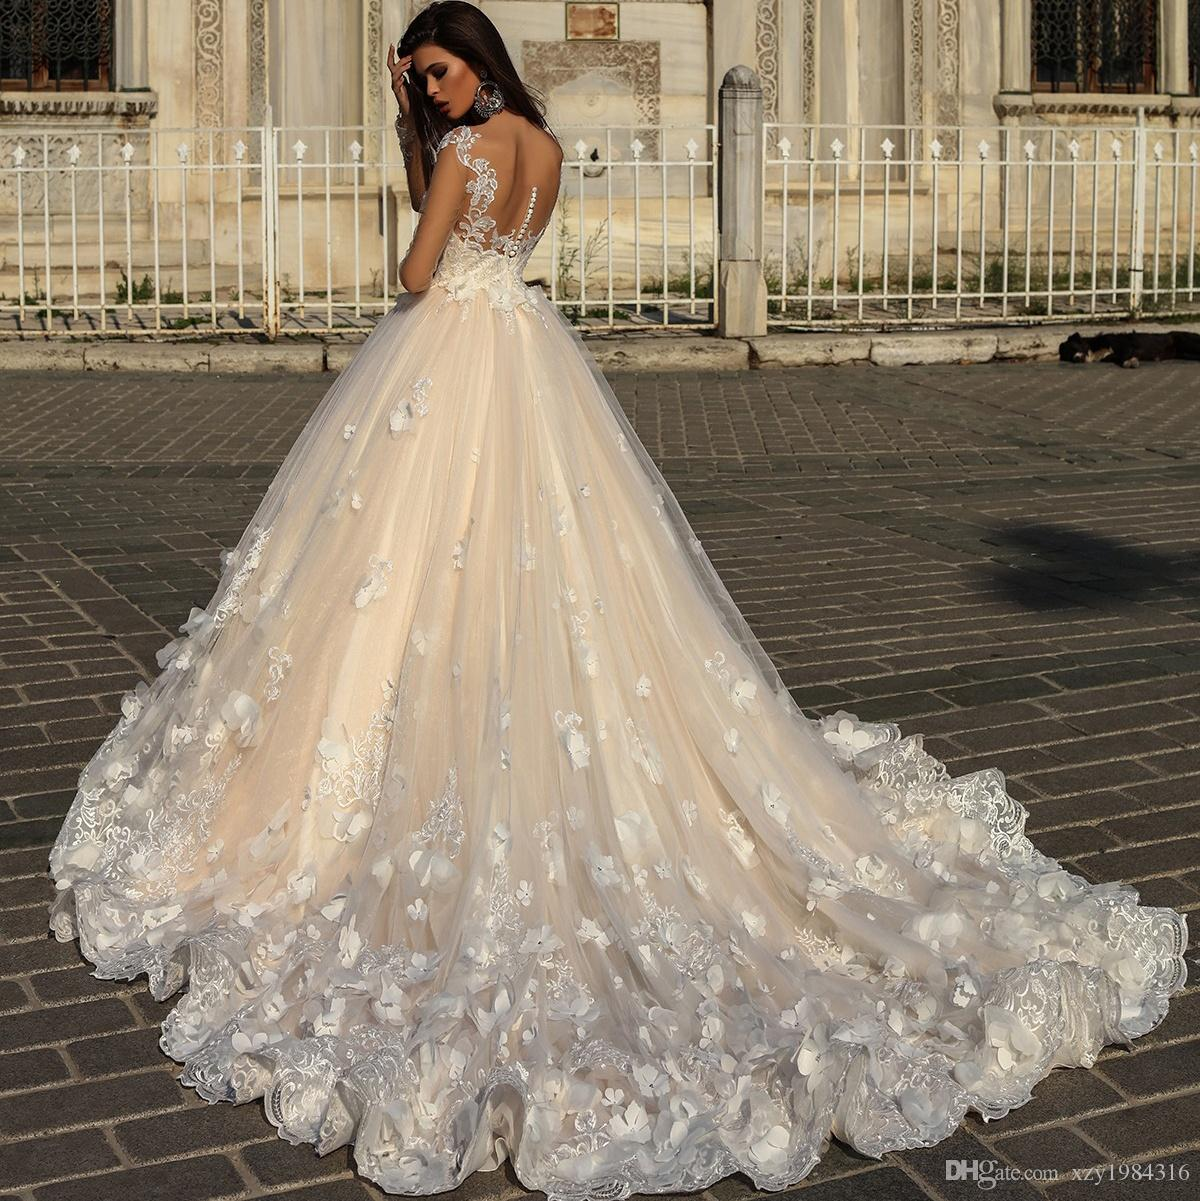 0f56da27d969 2018 Enchantment A Line Tulle Wedding Gown Sexy Sheer Long Sleeves Floral  Lace Applique Bridal Dress Crystal Design Couture Wedding Dresses Canada  2019 From ...